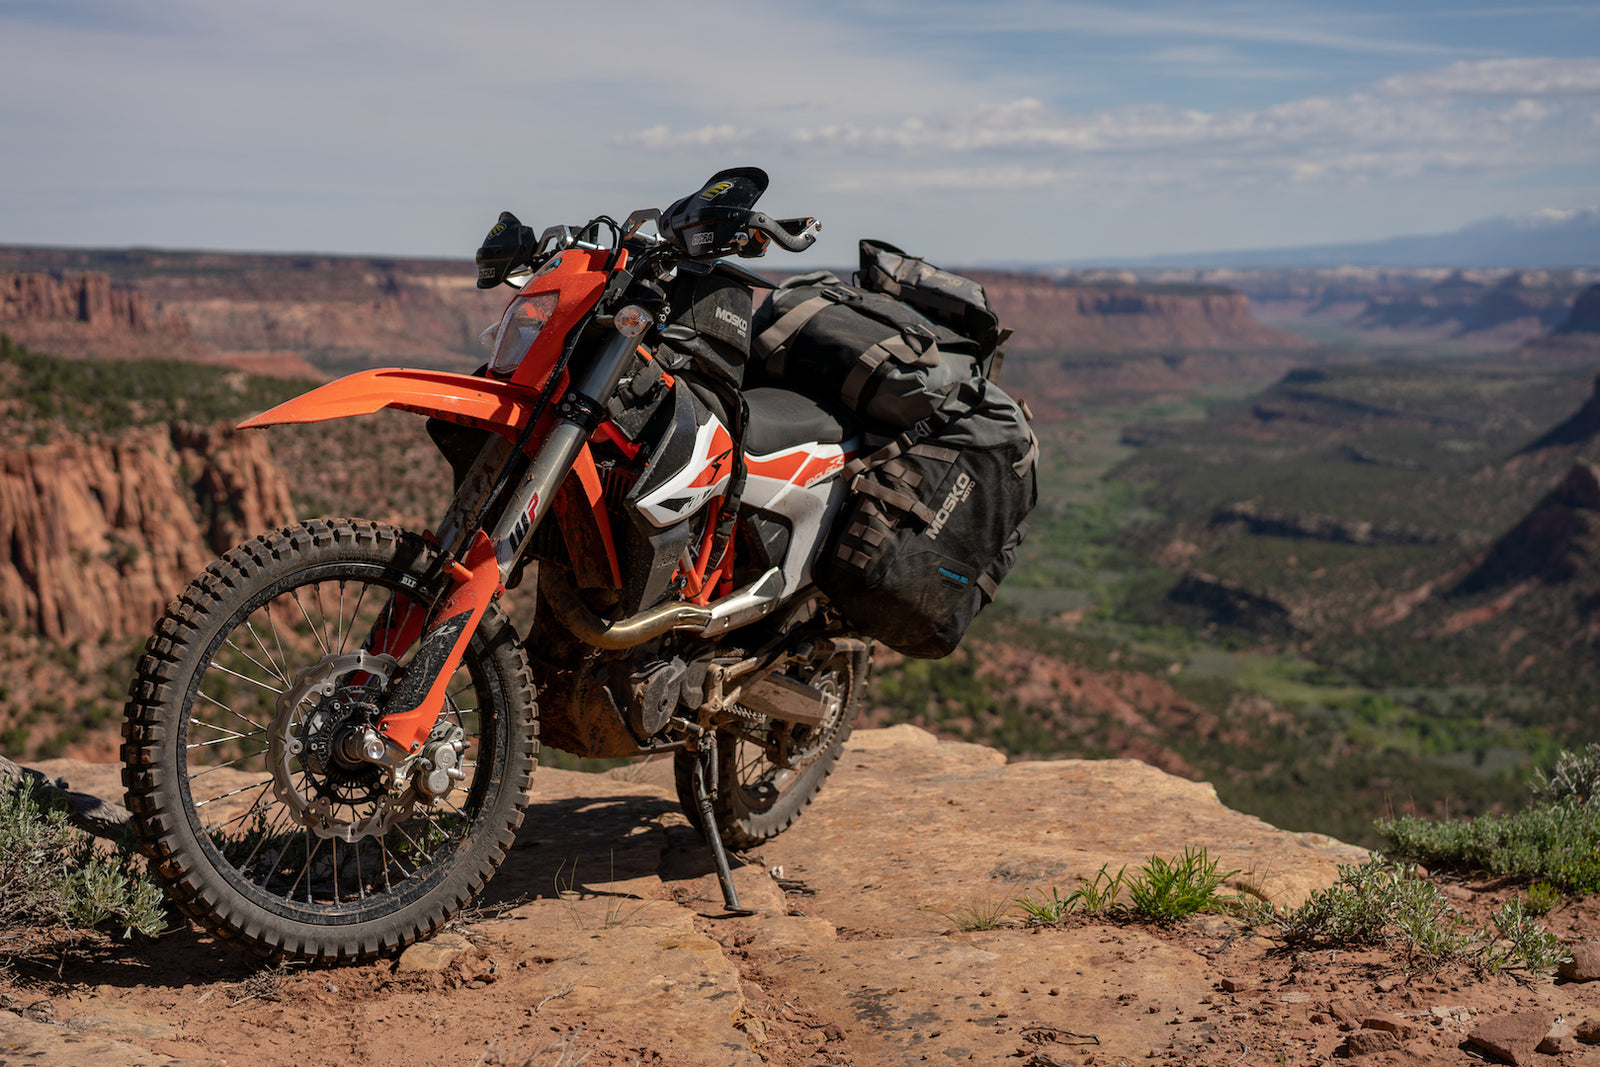 KTM Parts and Accessories - Fast Free Shipping over $75!